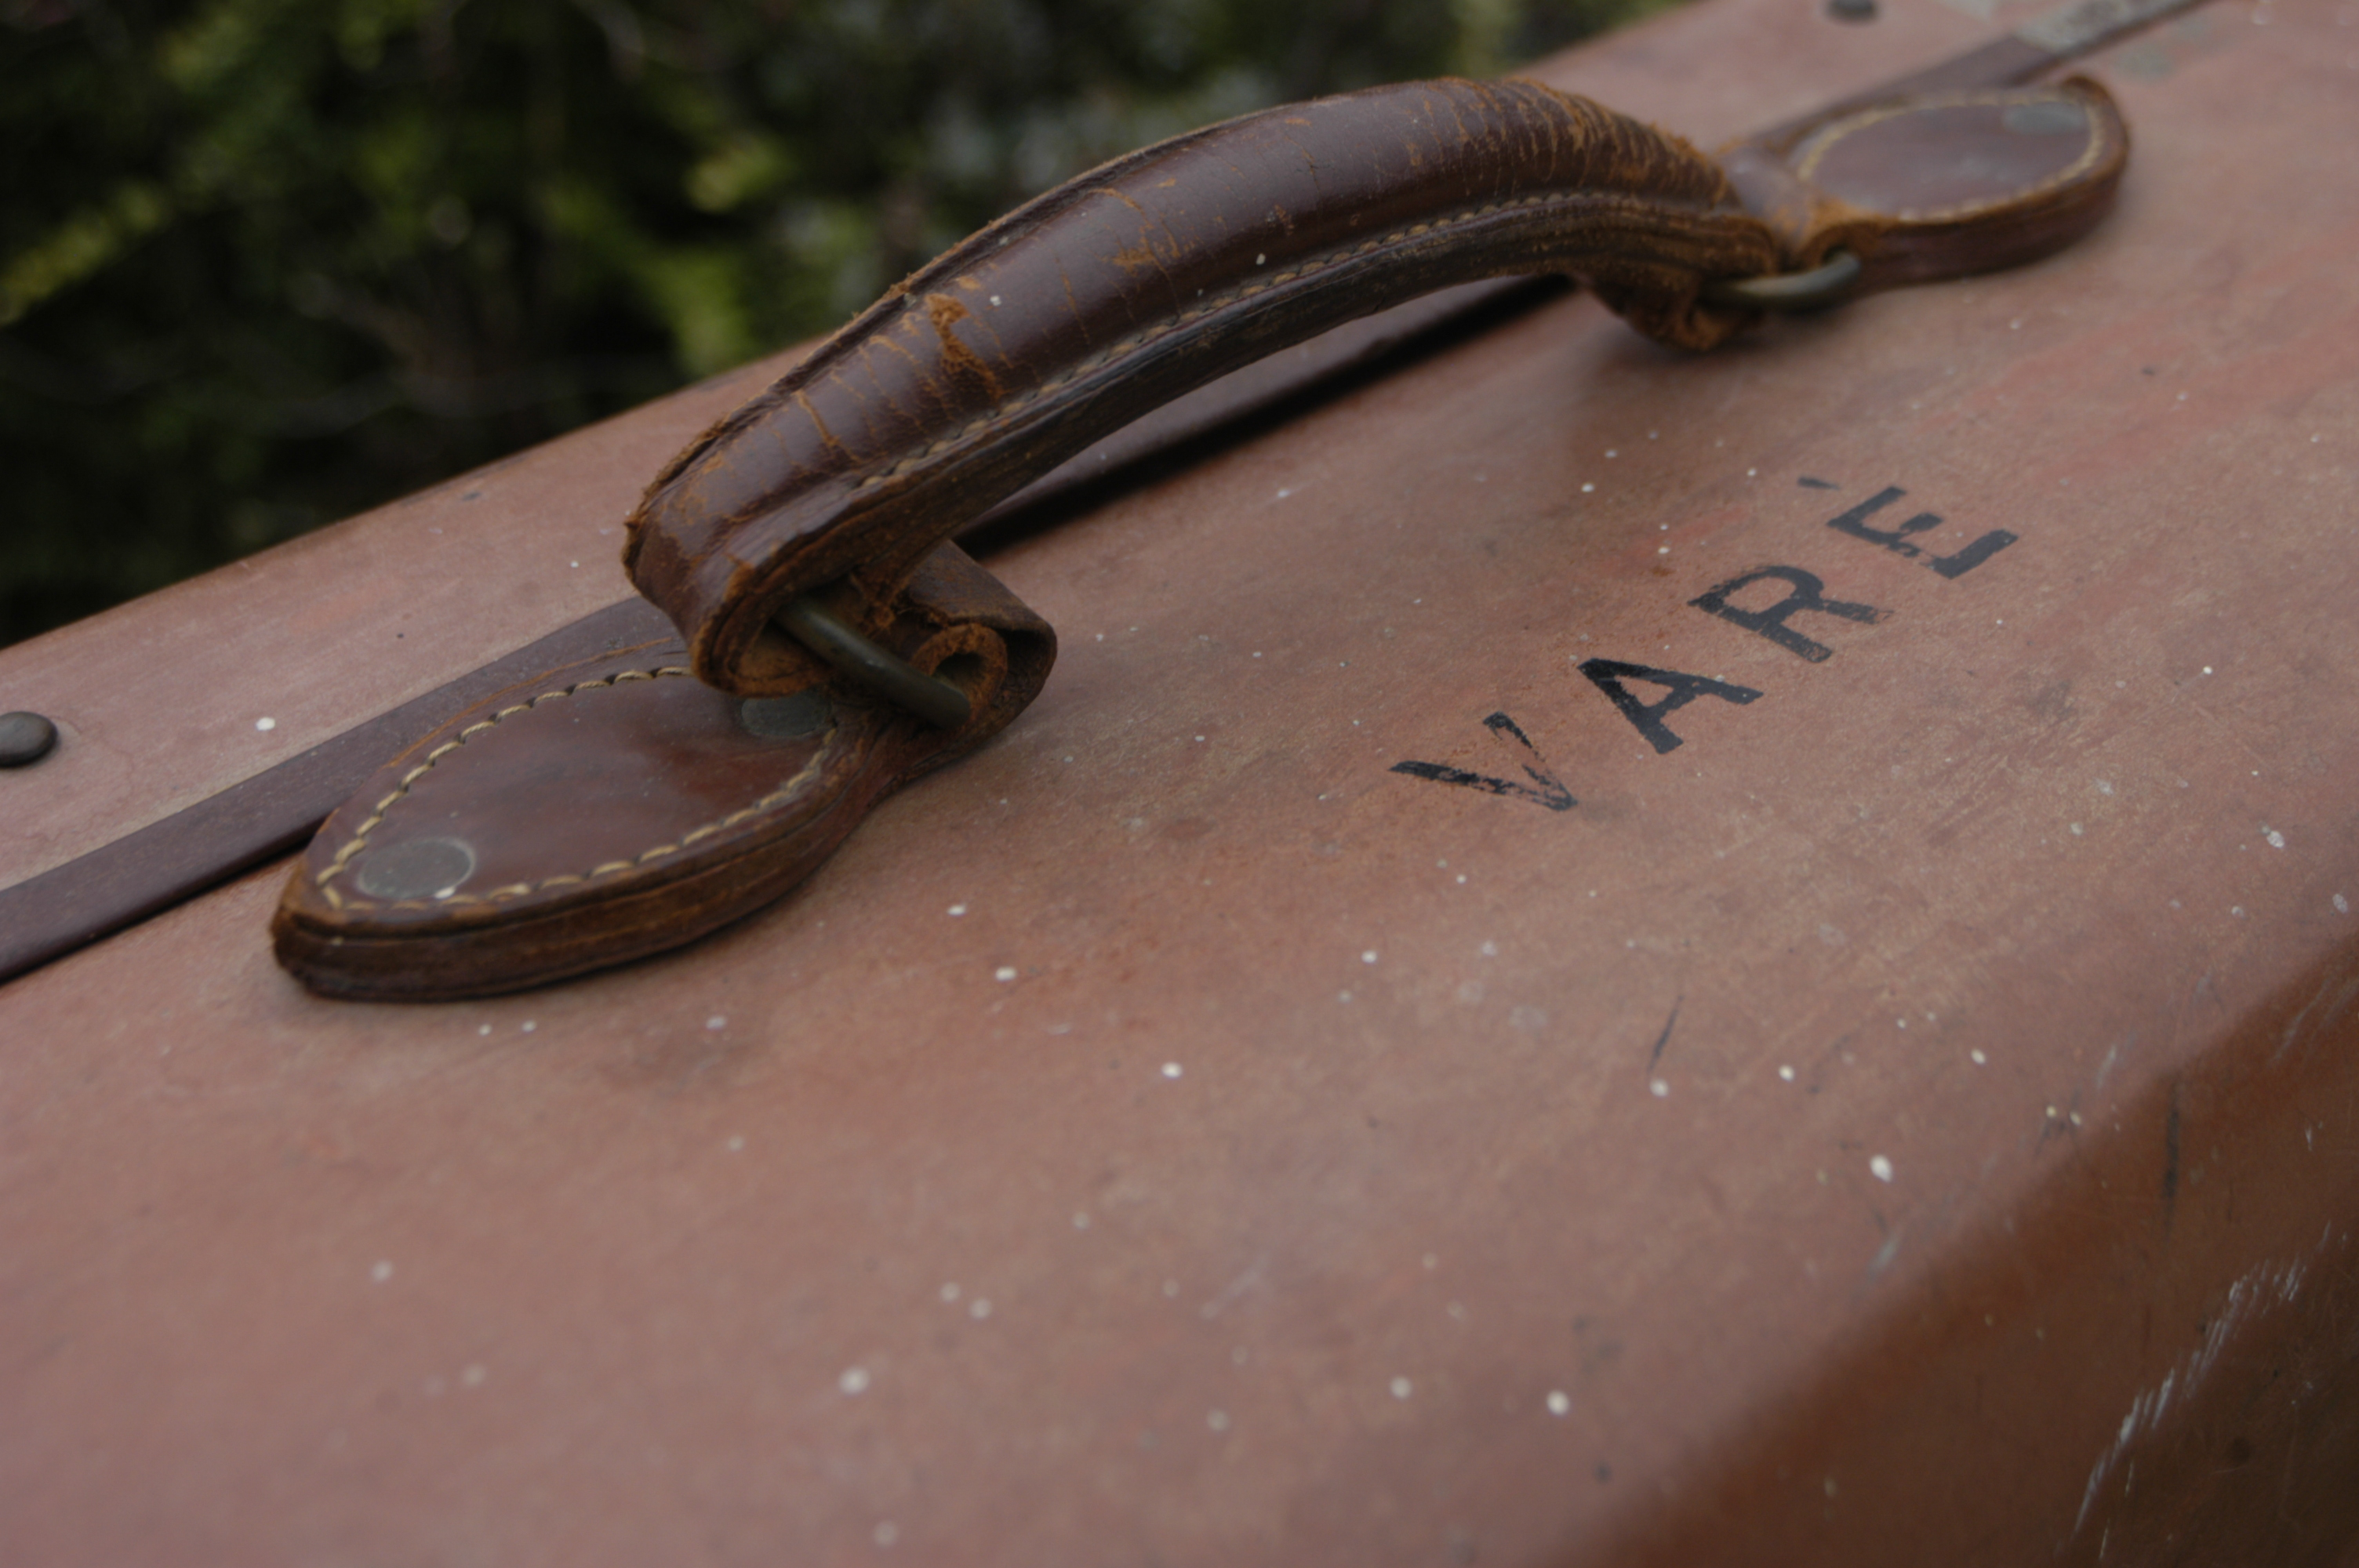 Suitcase that belonged to Daniele Varè, or his wife, and then daughter.